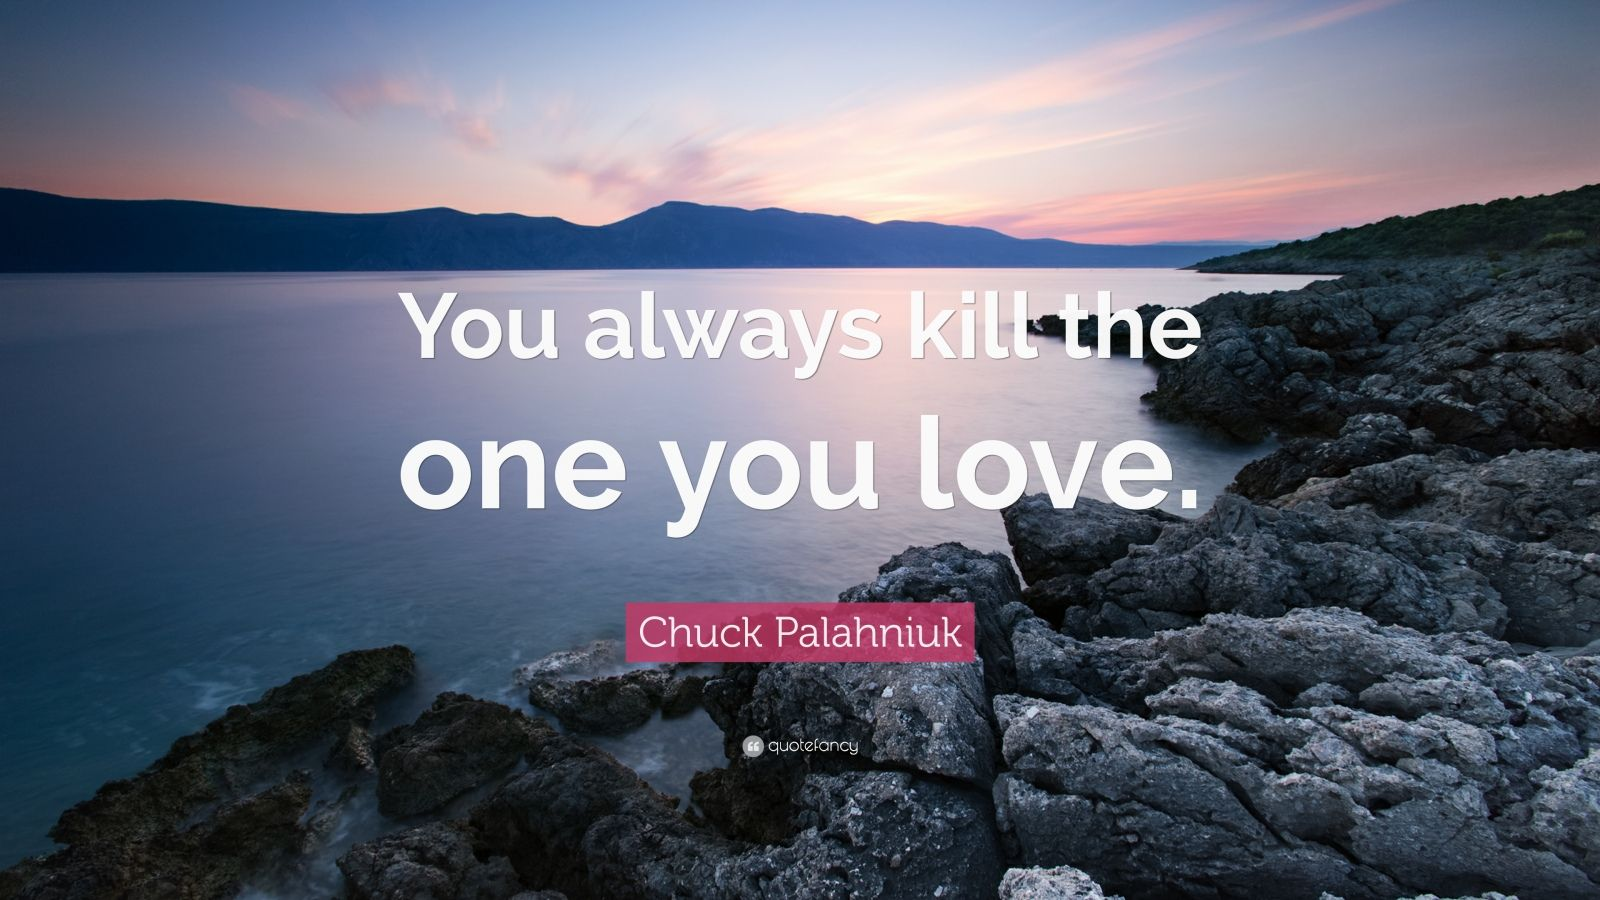 """Chuck Palahniuk Quote: """"You always kill the one you love."""""""